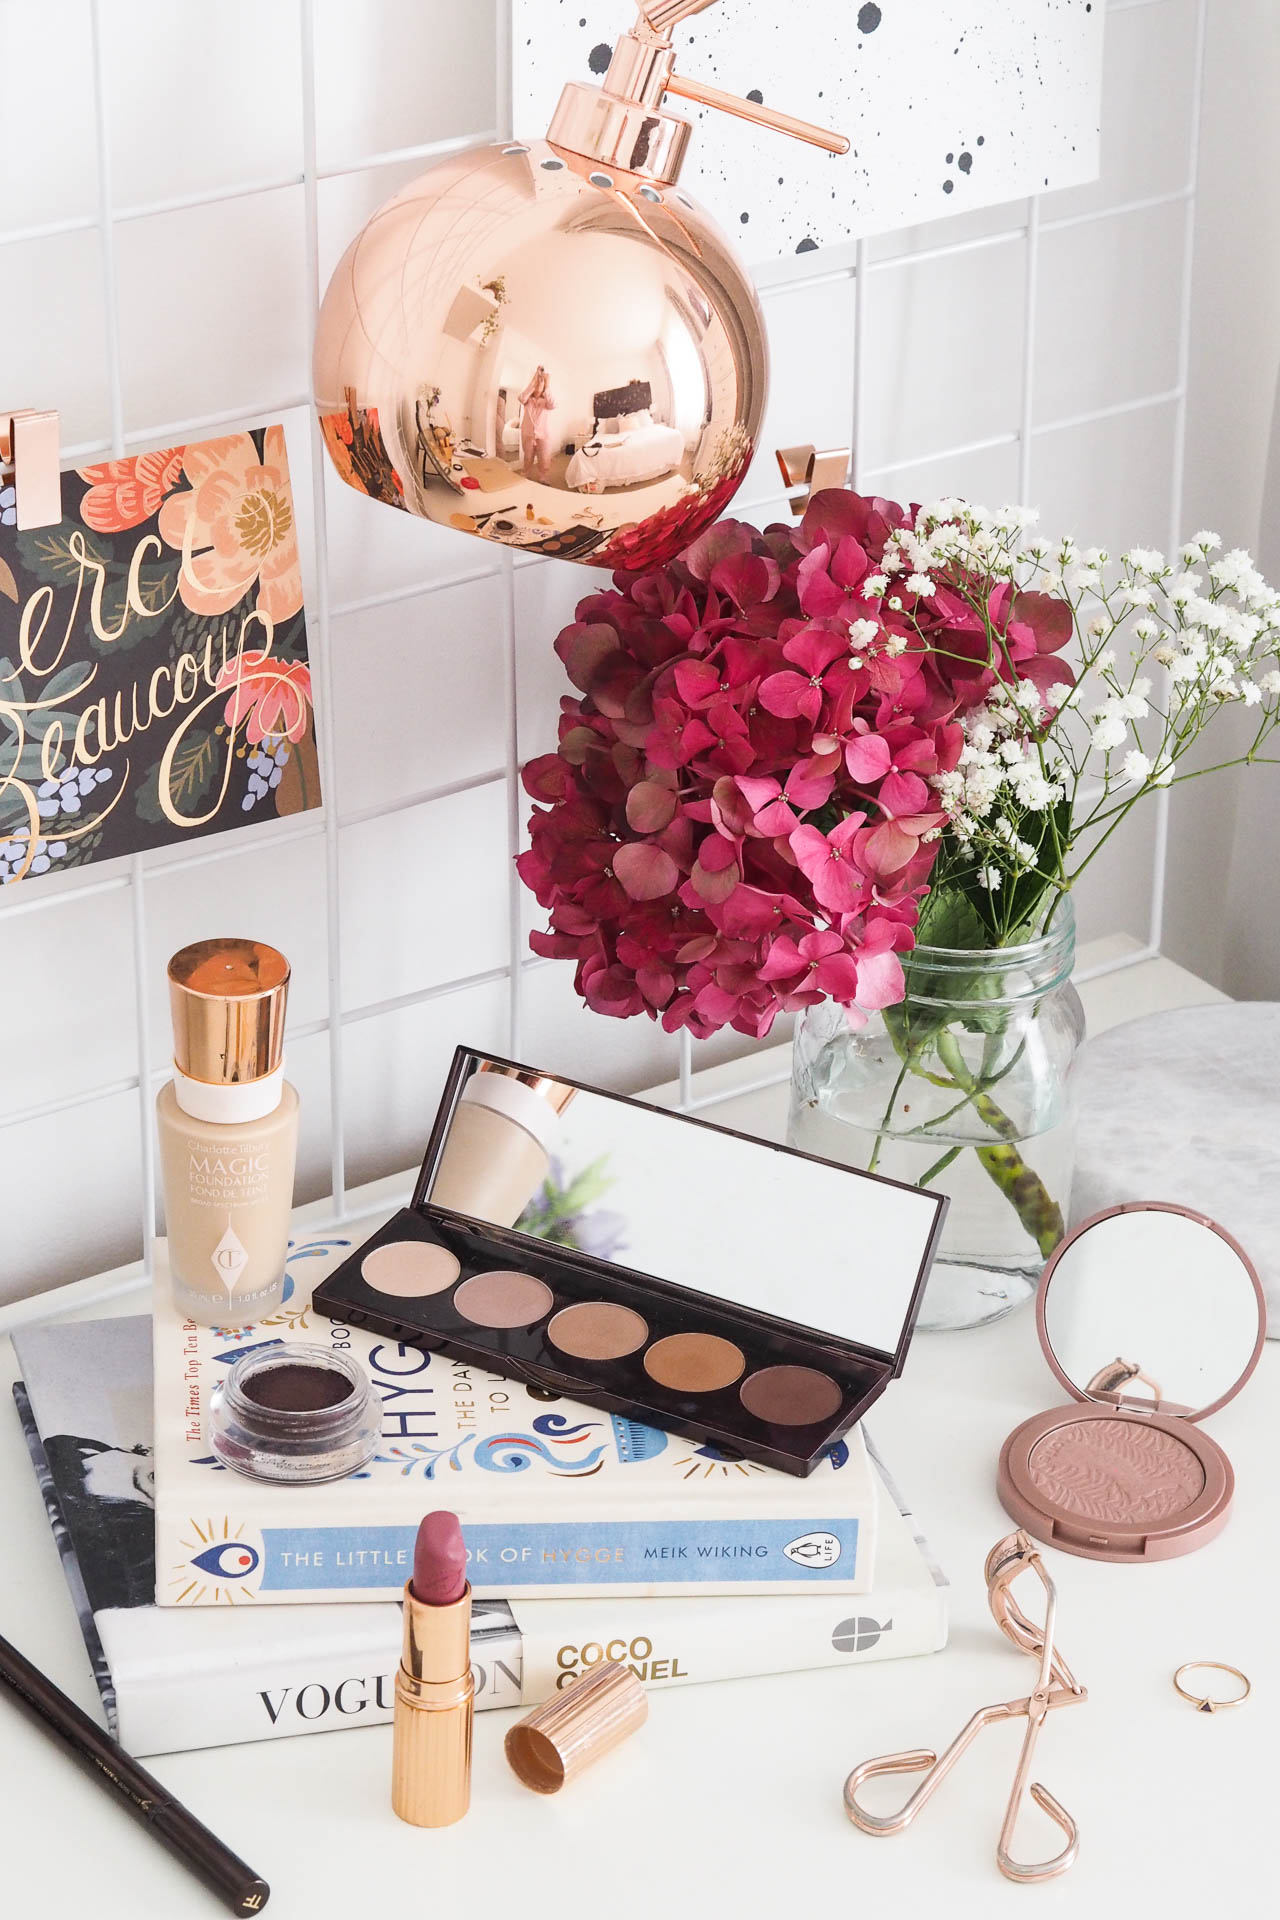 autumn makeup updates - how i'm changing up my makeup this fall